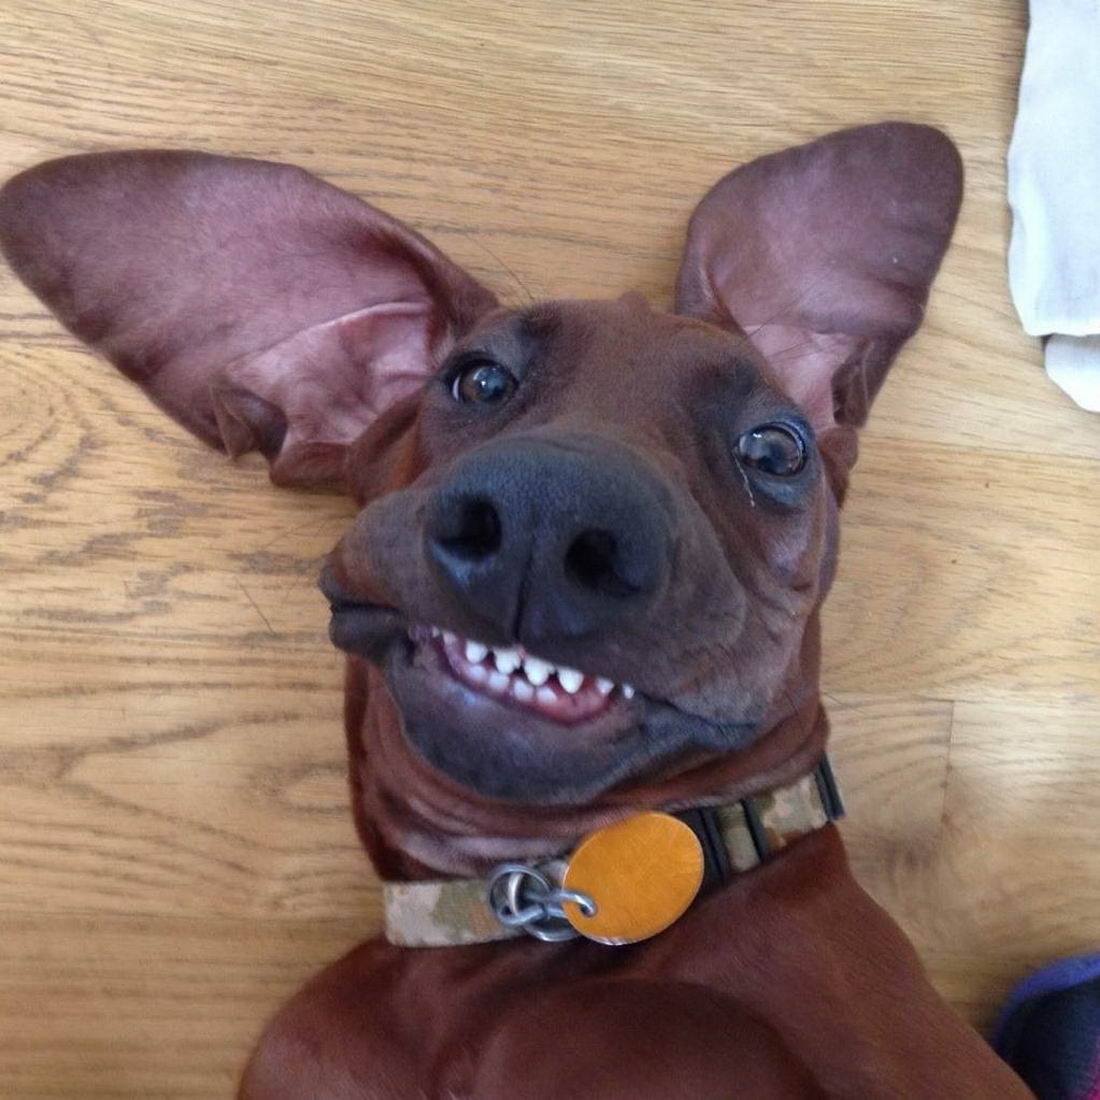 Funny Animals Pictures To Make Your Day (38 Photos)